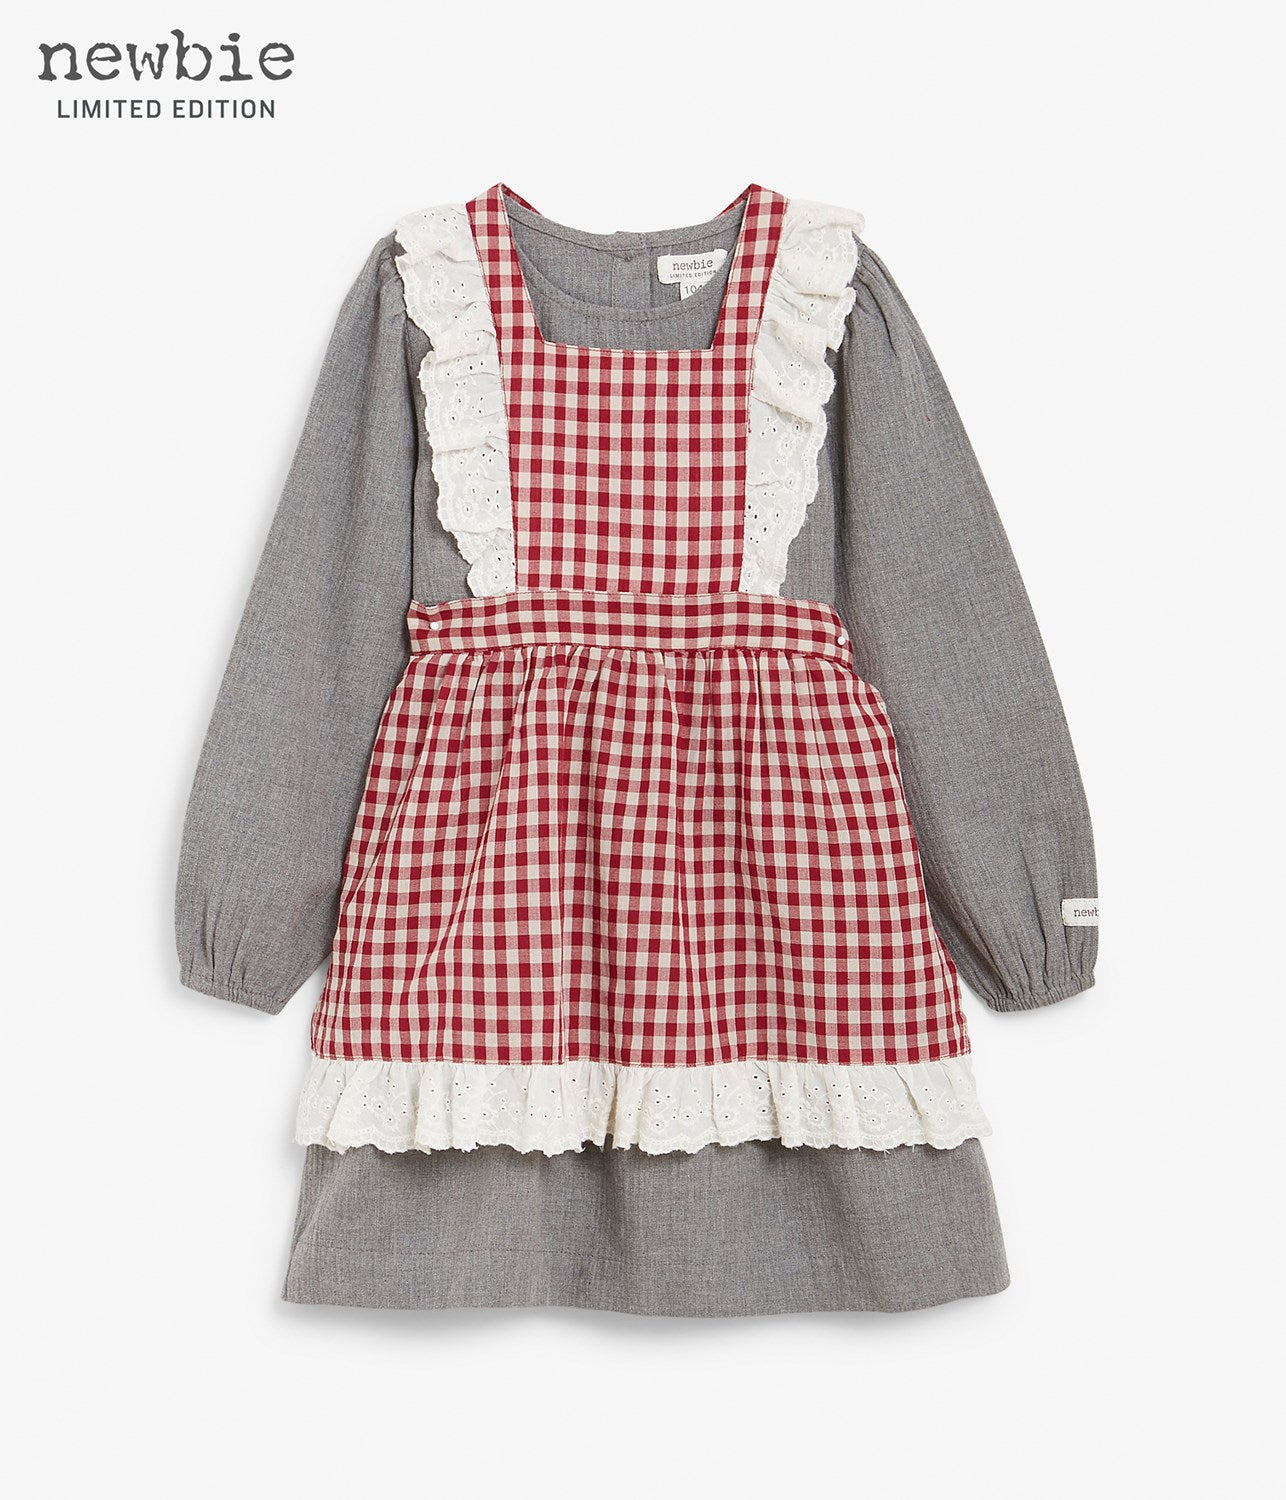 Kids grey dress with red checkered apron and frills